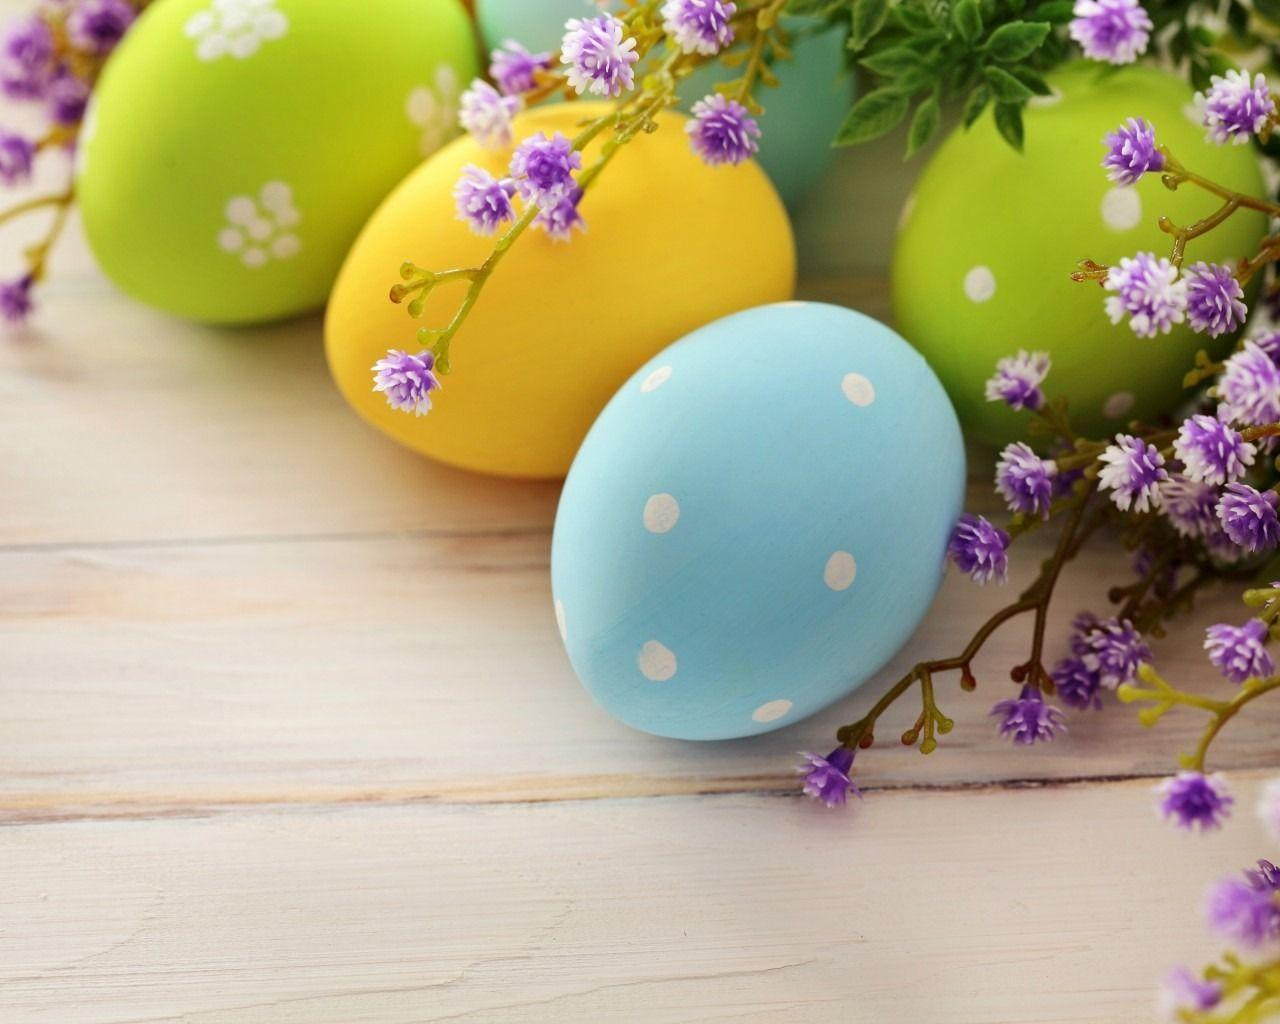 Cute Easter Wallpapers 1280x1024